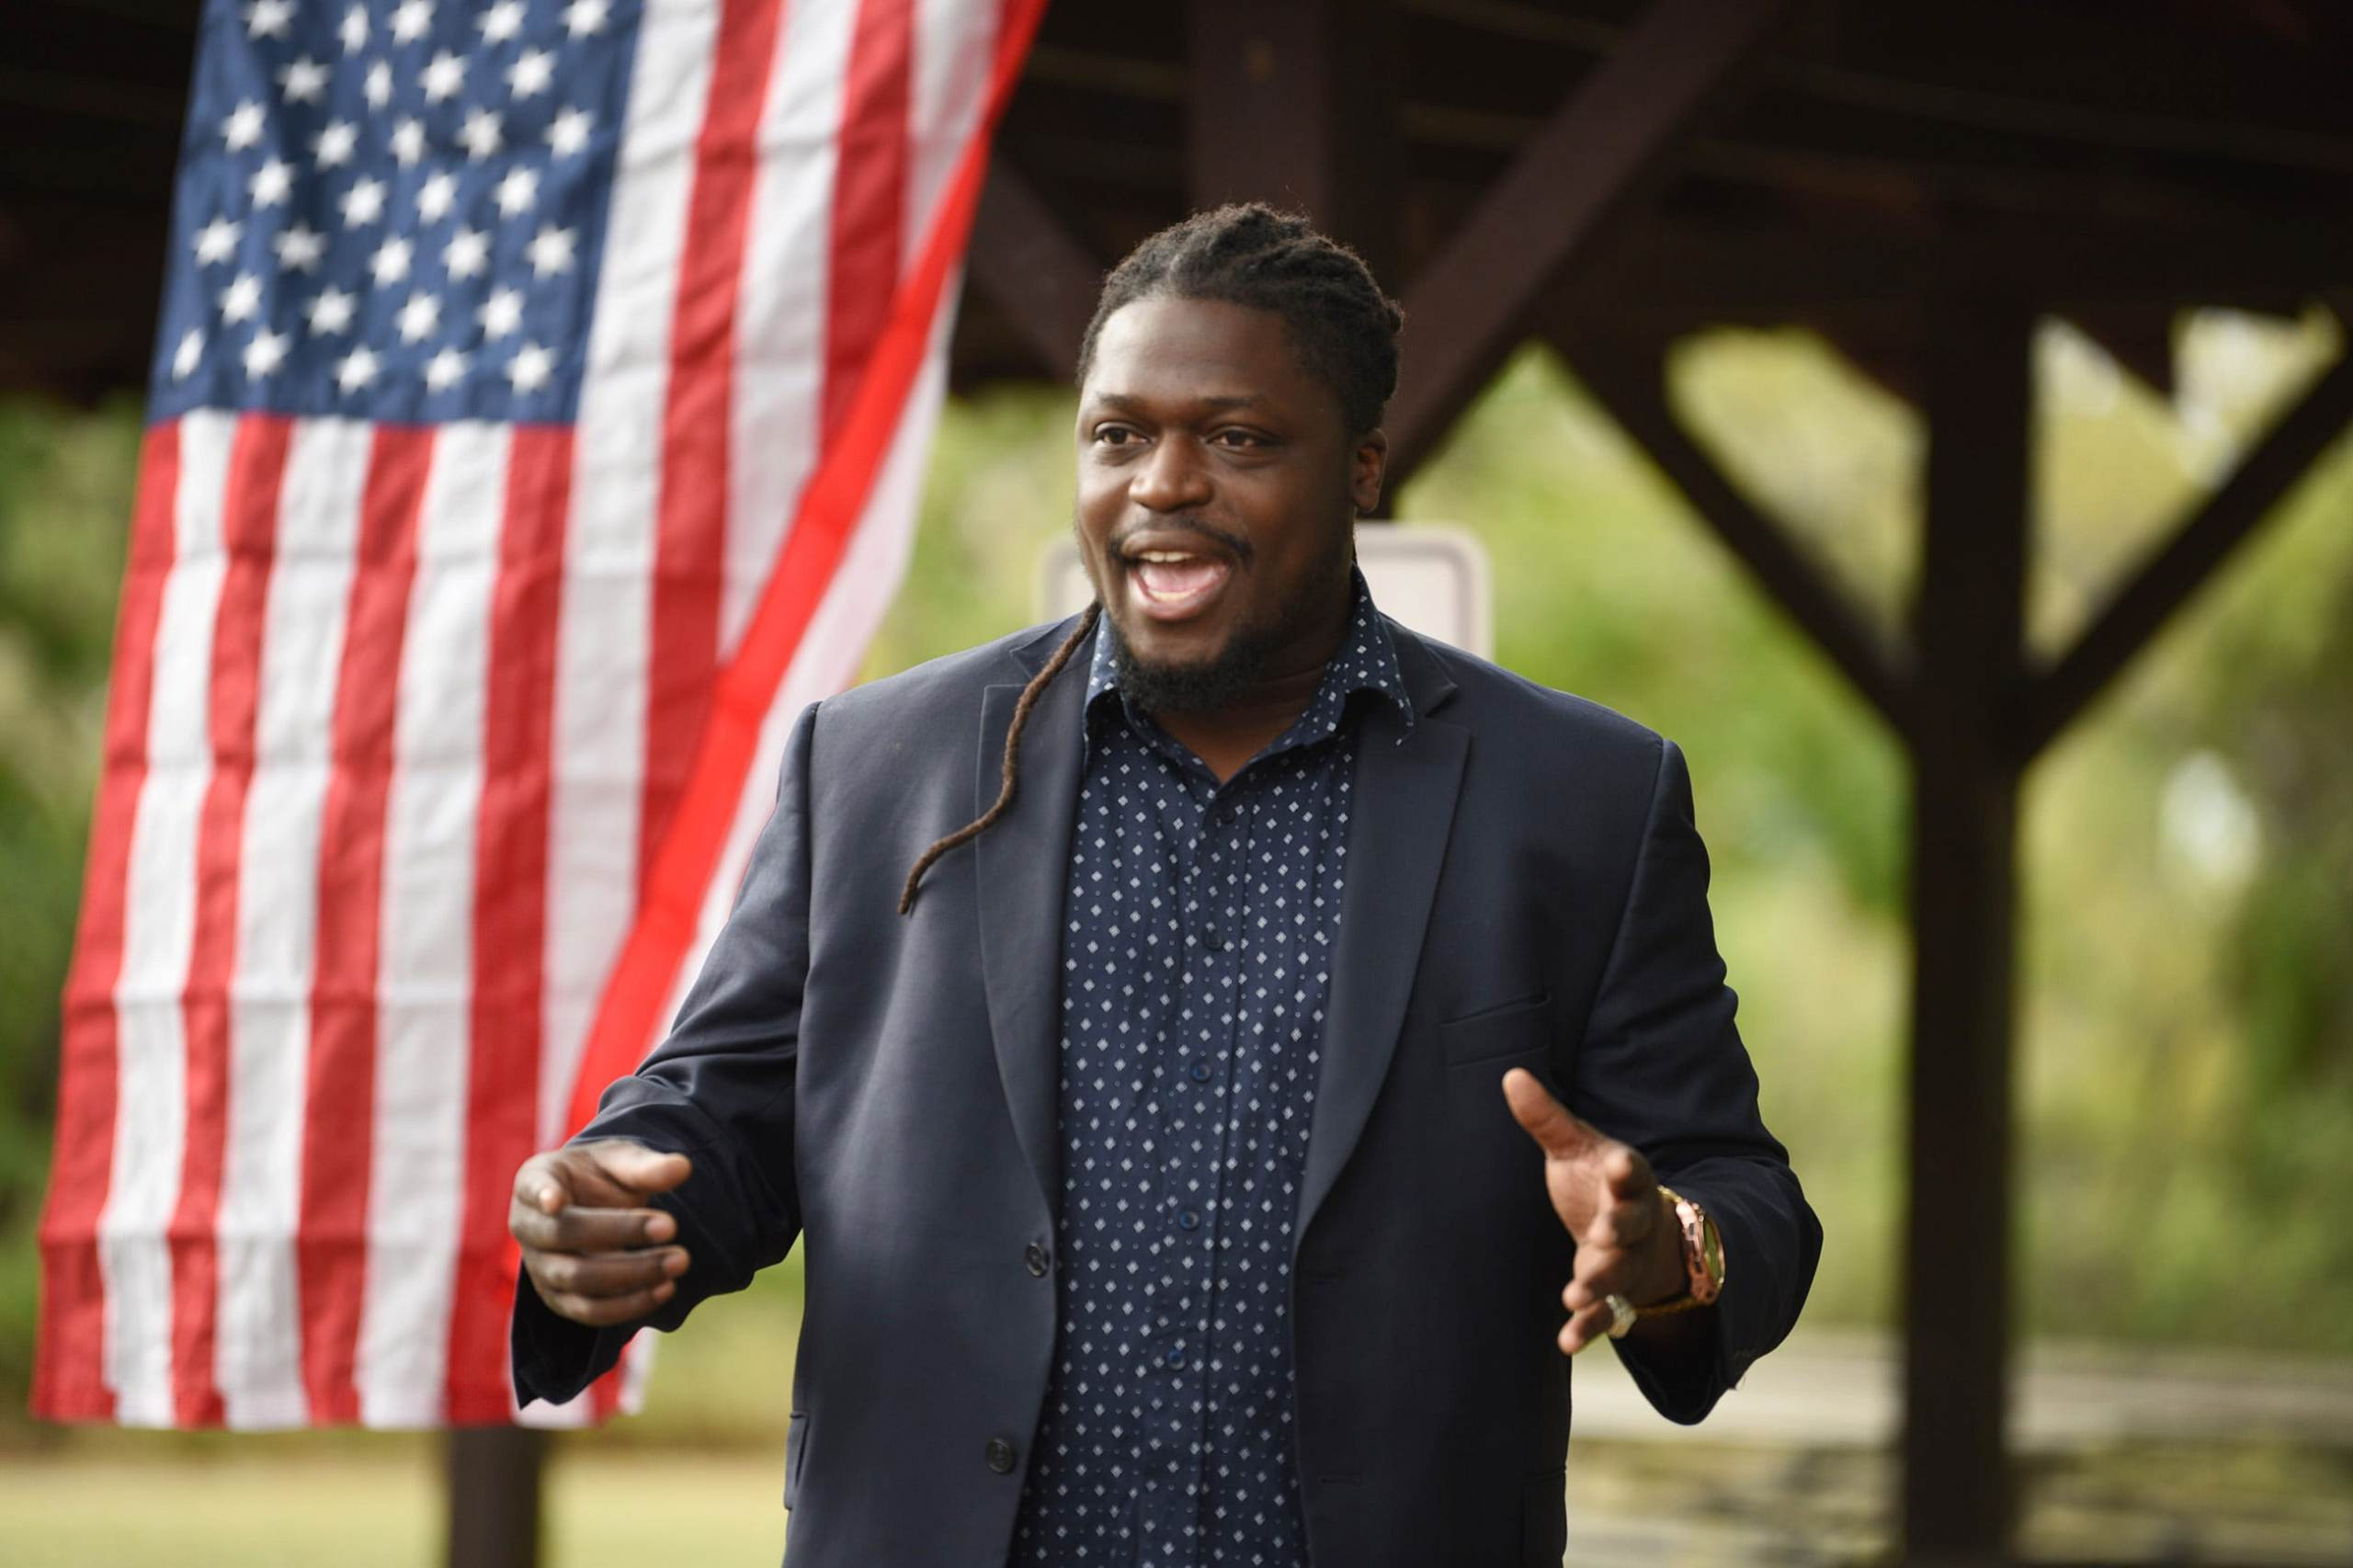 Billy Prempeh: Unlike BLM, I Am Running For Congress to Actually Help Protect Black Lives By Supporting Our Police